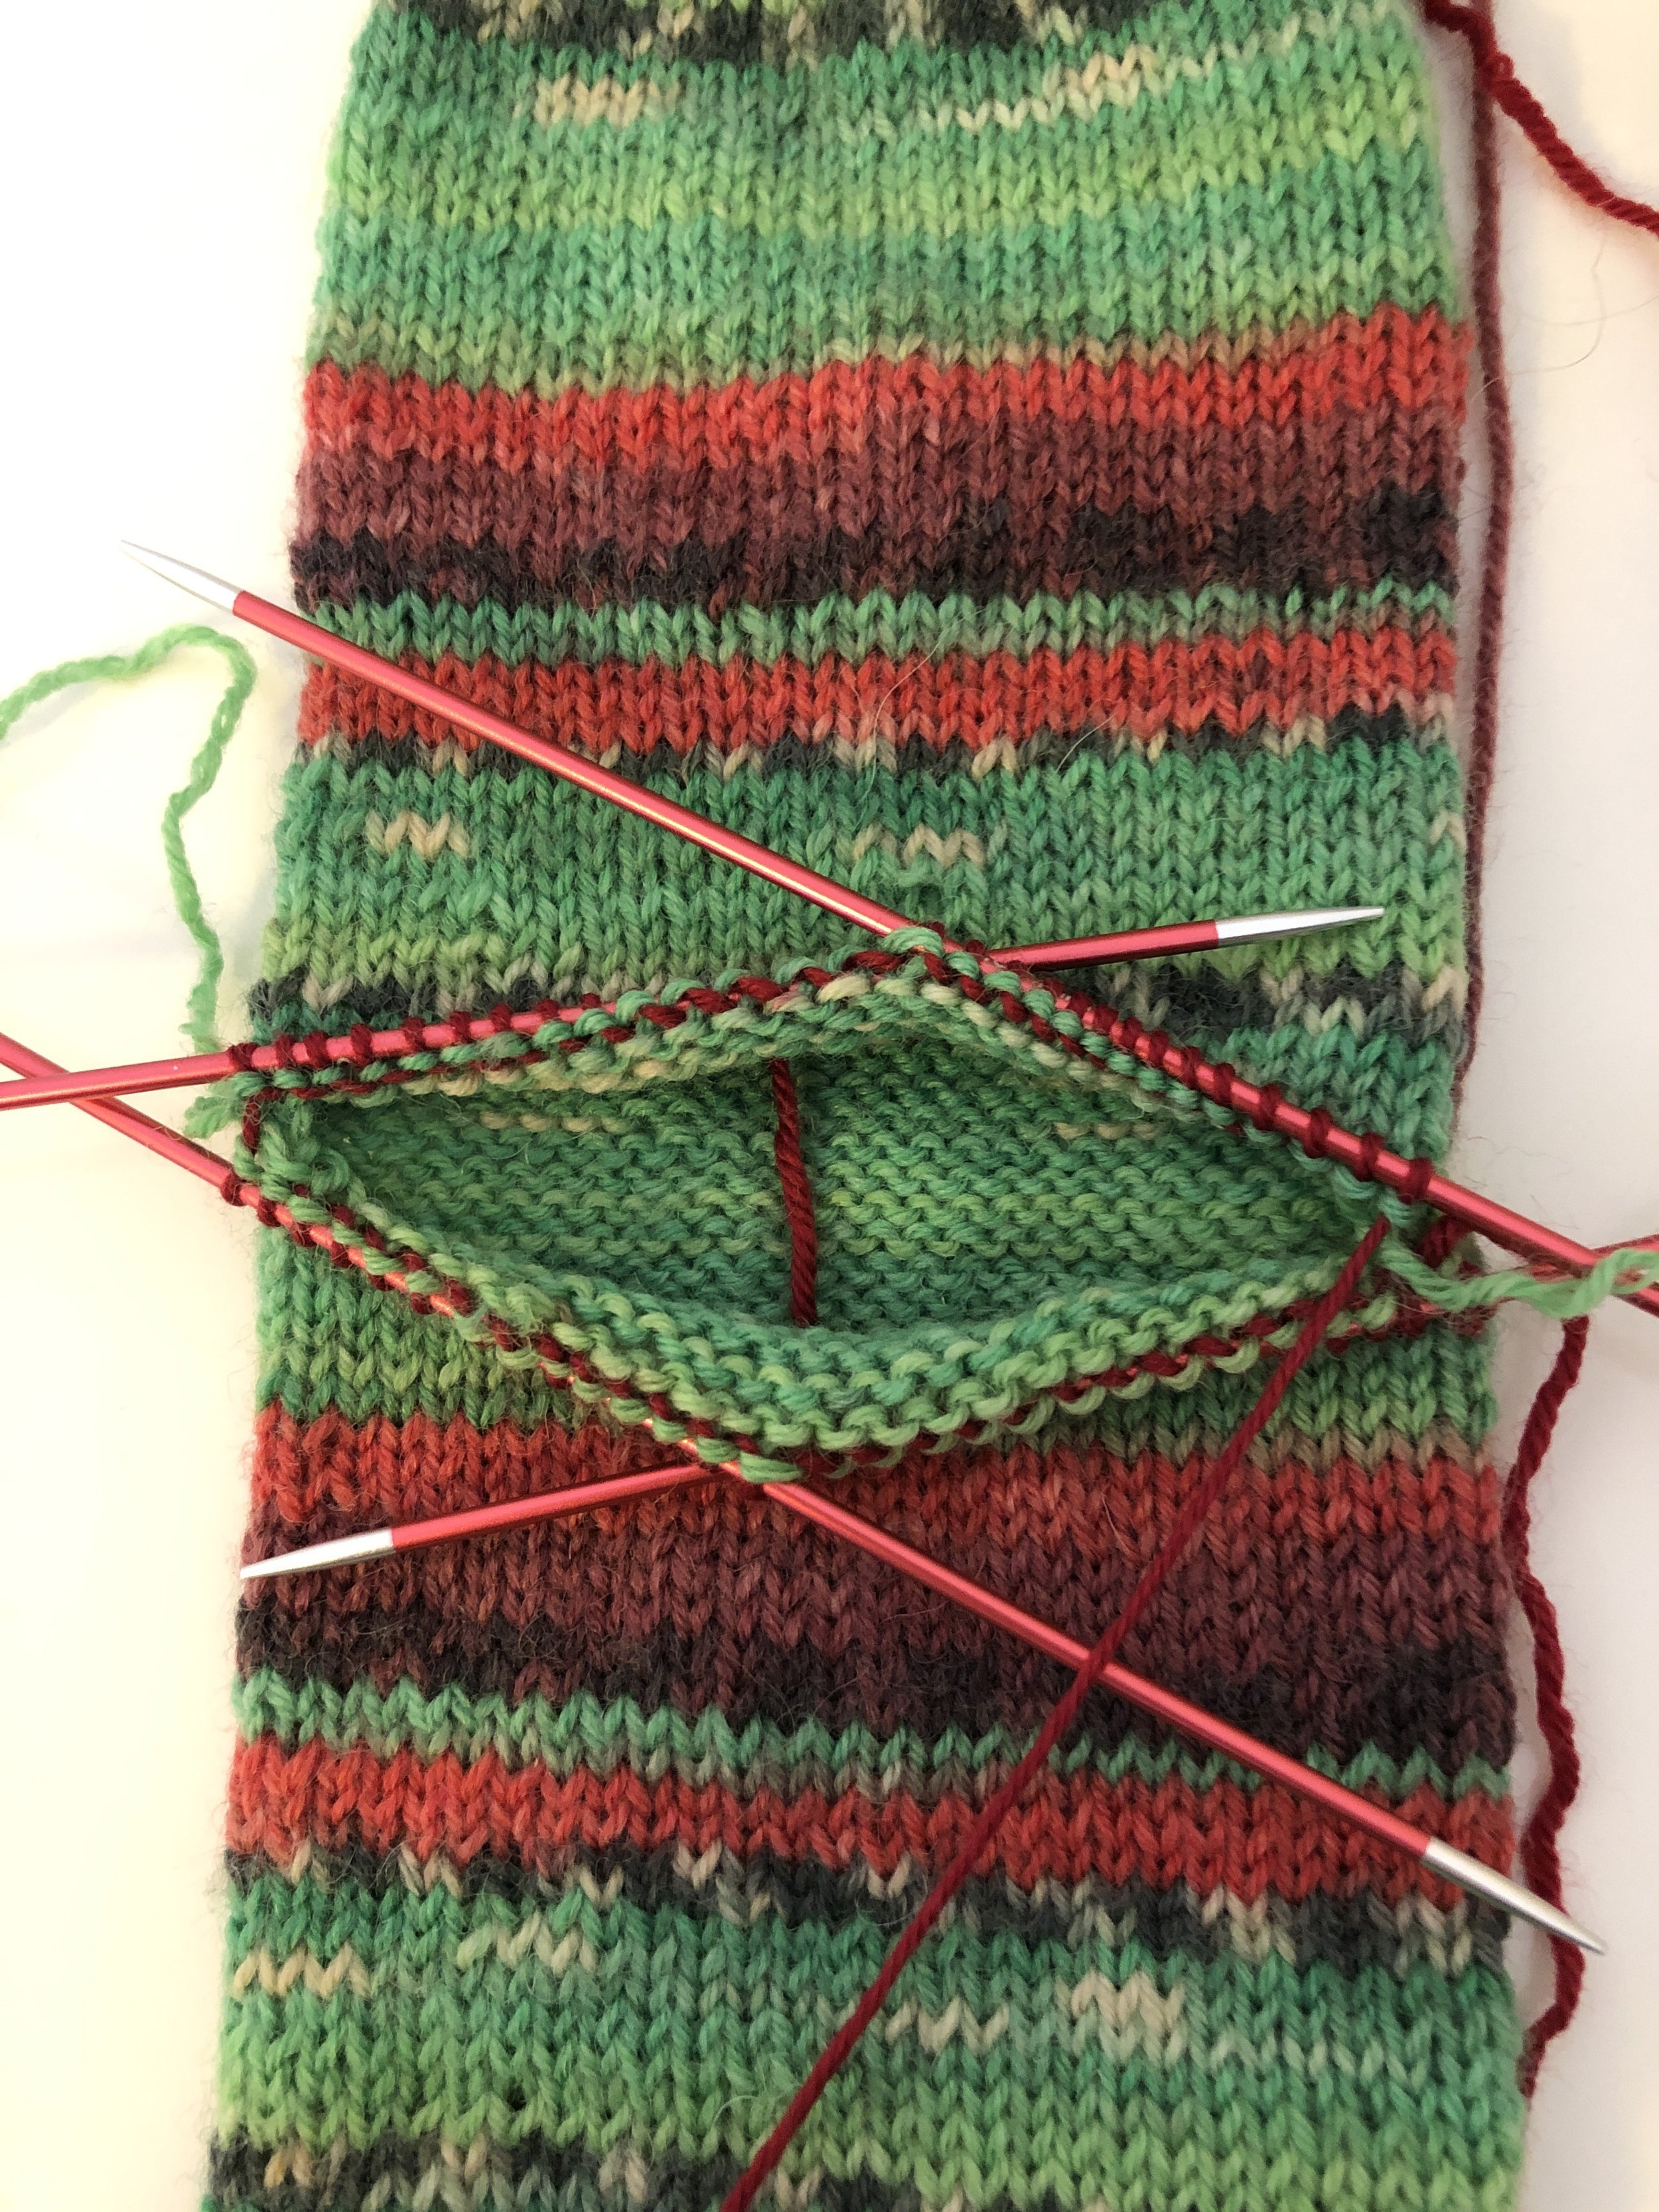 Step Five - Then I rearranged the stitches onto 4 dpns and then knitted the same rounded toe pattern for the heel.